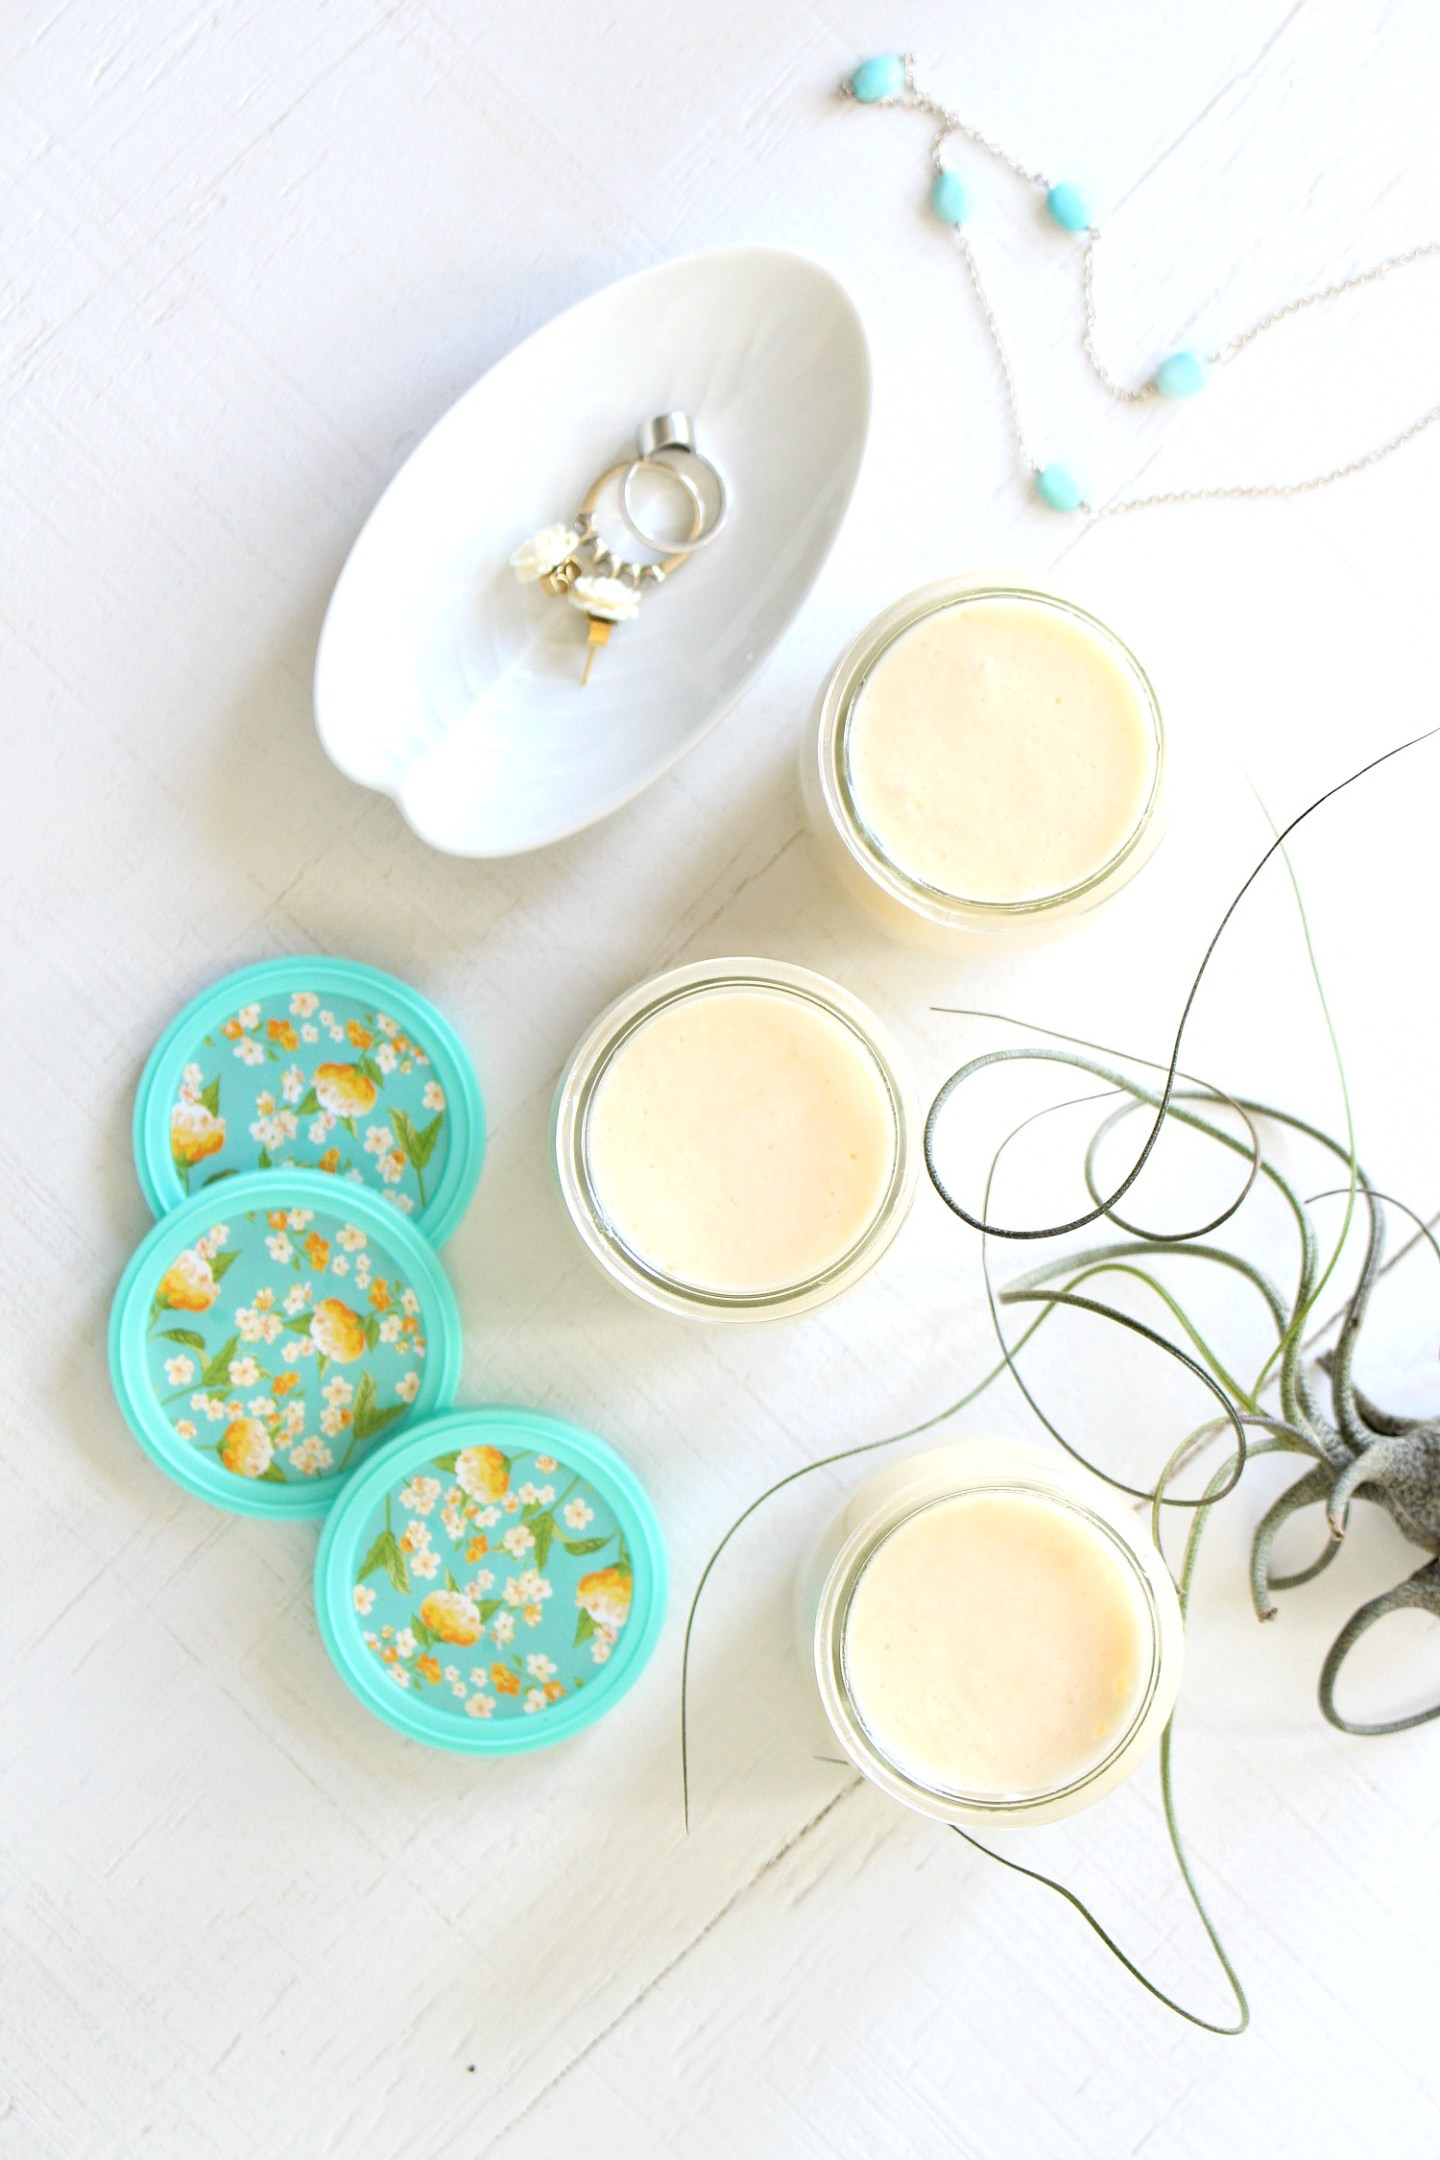 DIY whipped body butter - all natural beauty products